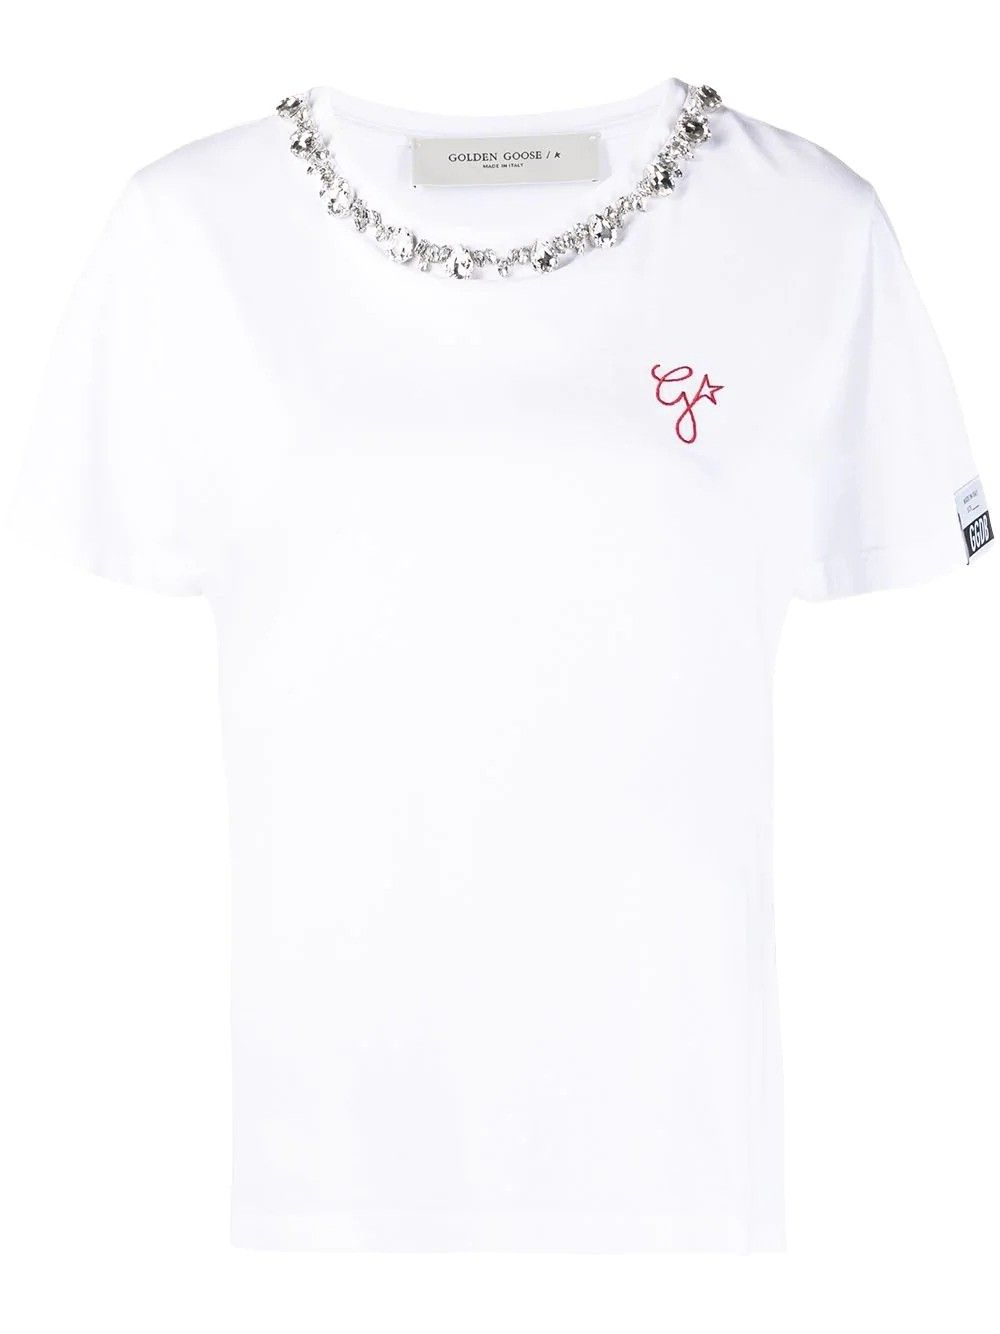 Golden Goose Cottons GOLDEN GOOSE WOMEN'S WHITE COTTON T-SHIRT